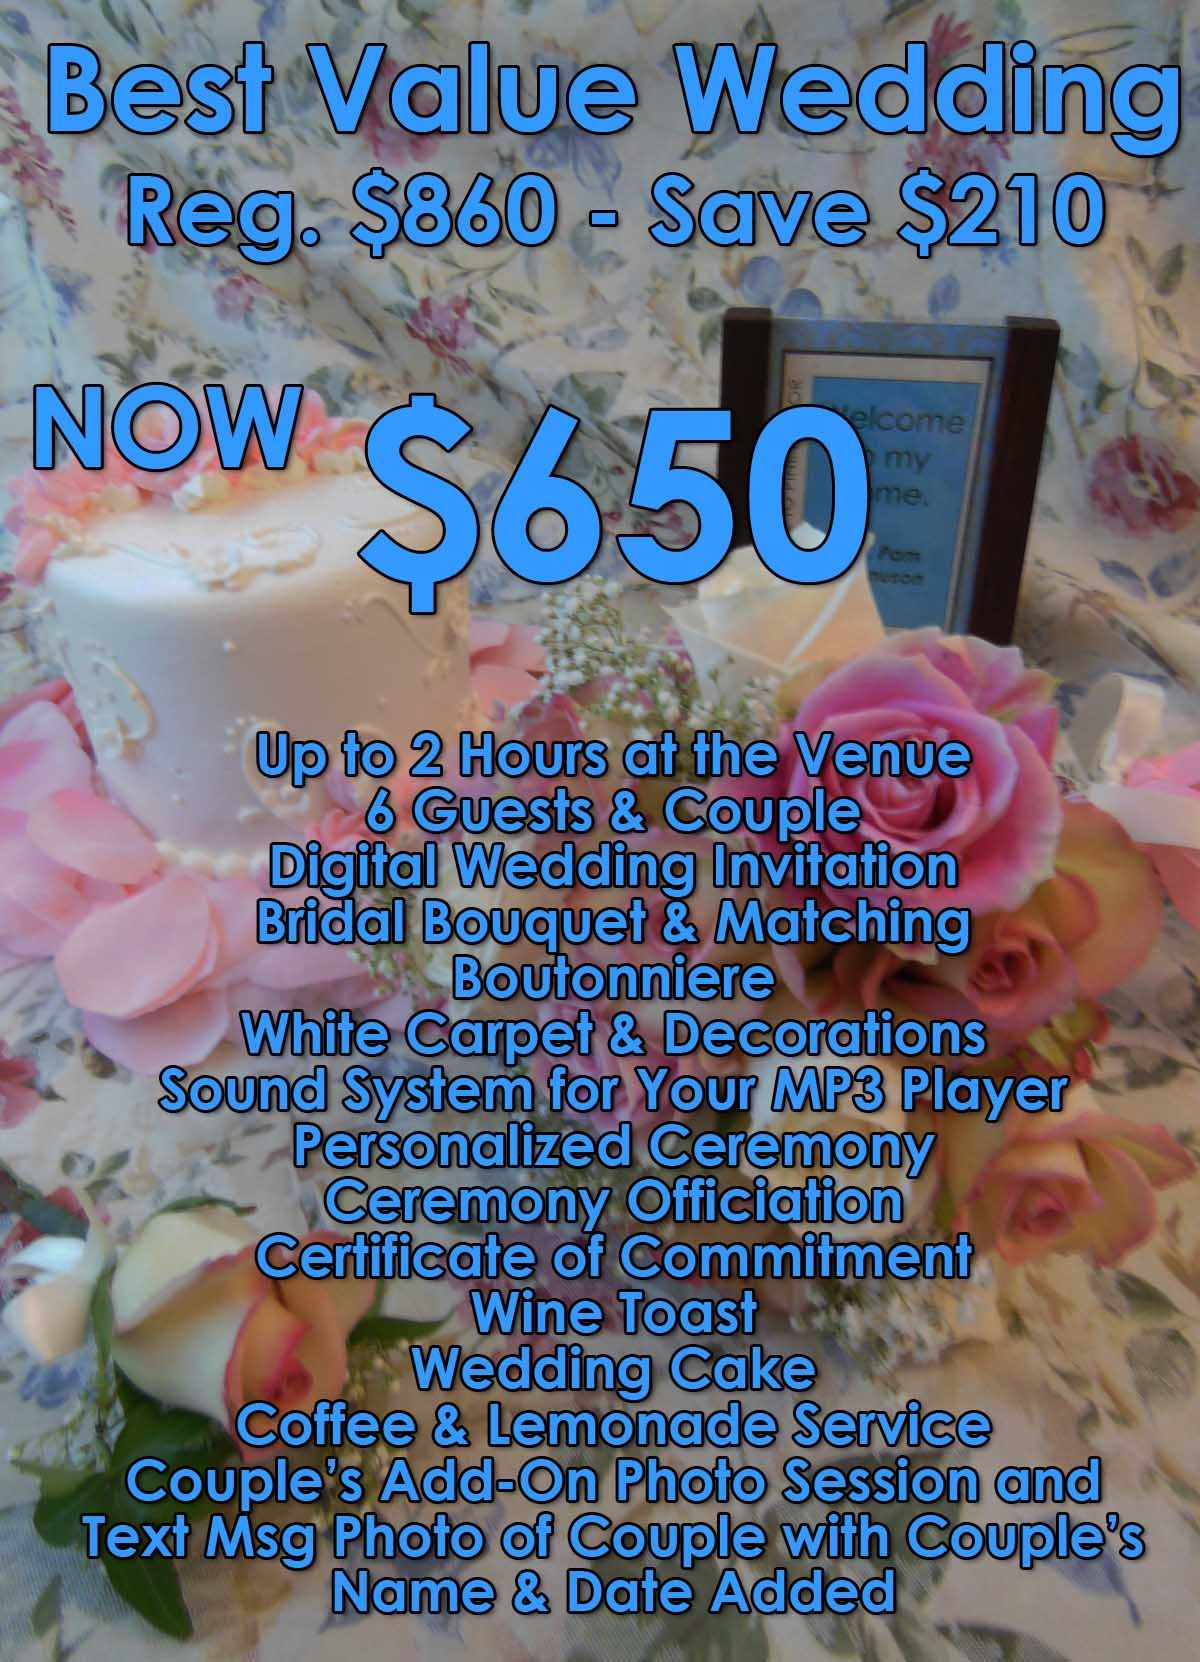 Best Value Wedding Packages Budget Ideas Small Venue 1200x1662 In 2702KB